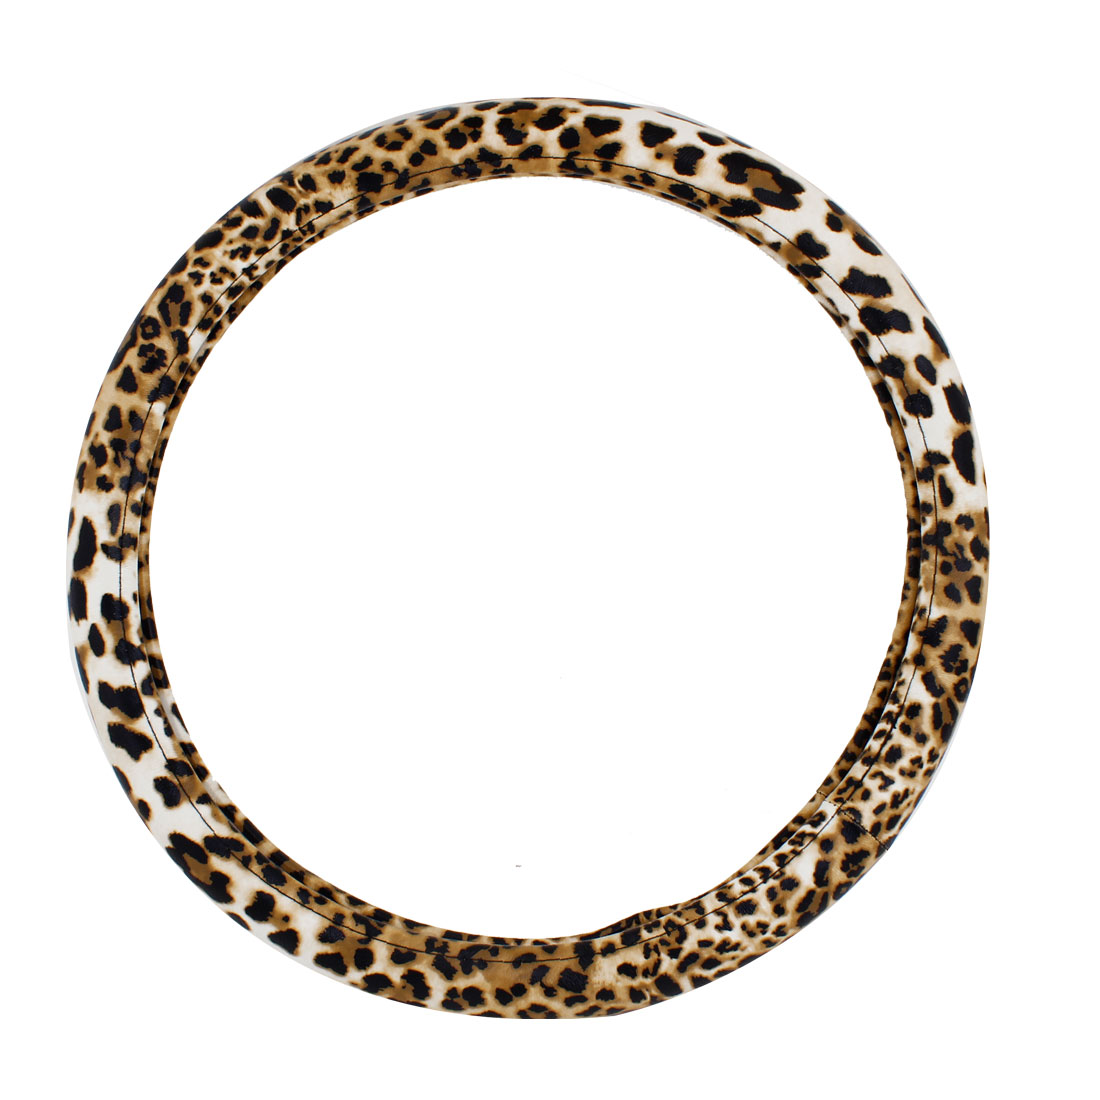 38cm Dia Leopard Pattern Faux Leather Steering Wheel Cover Guard for Car